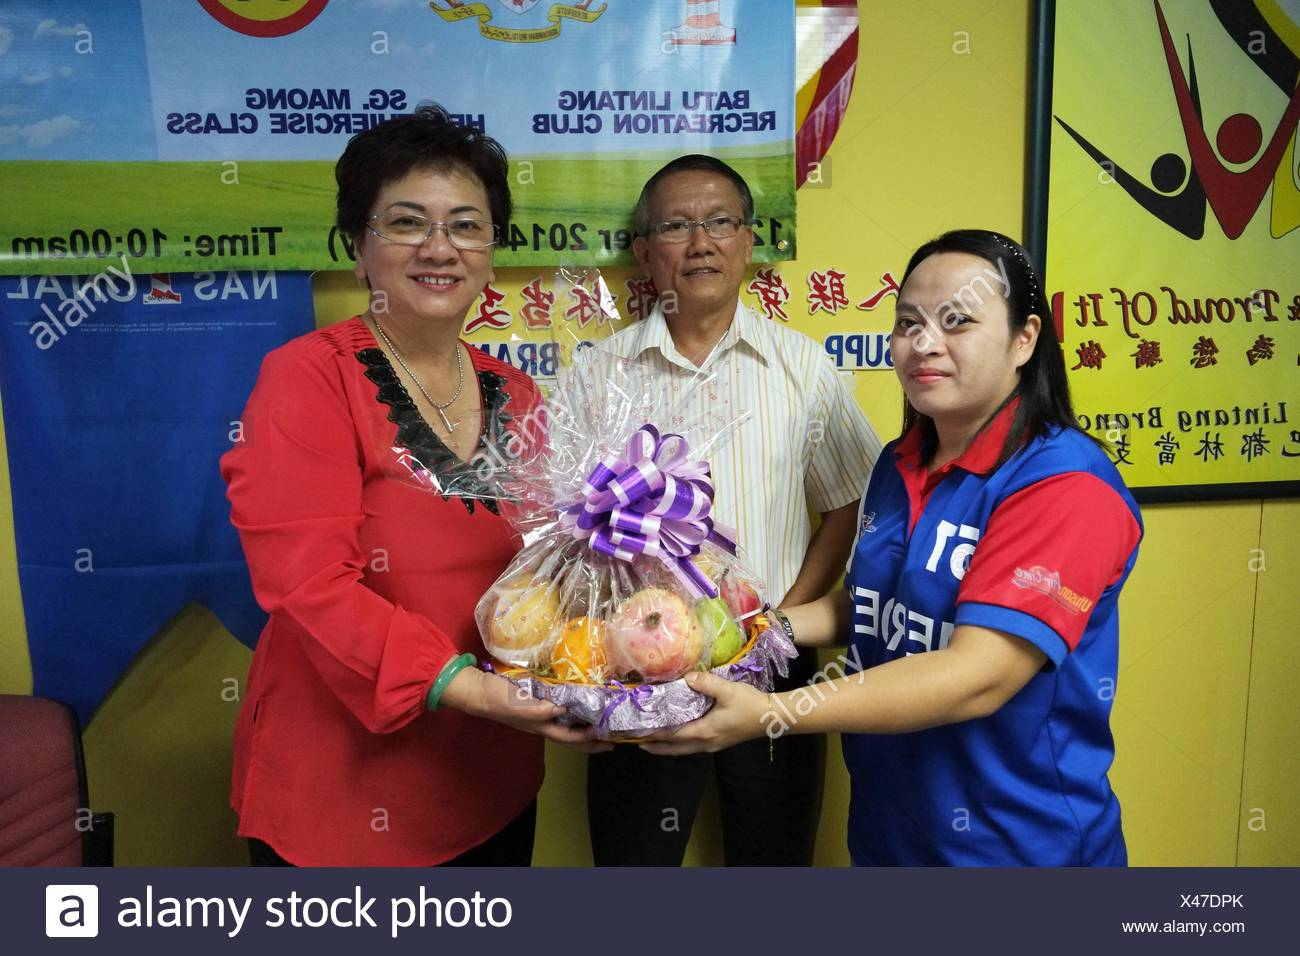 Appreciation gift after the Health talk for the Sungai Maong Community in Kuching, Sarawak, Malaysia. - Stock Image